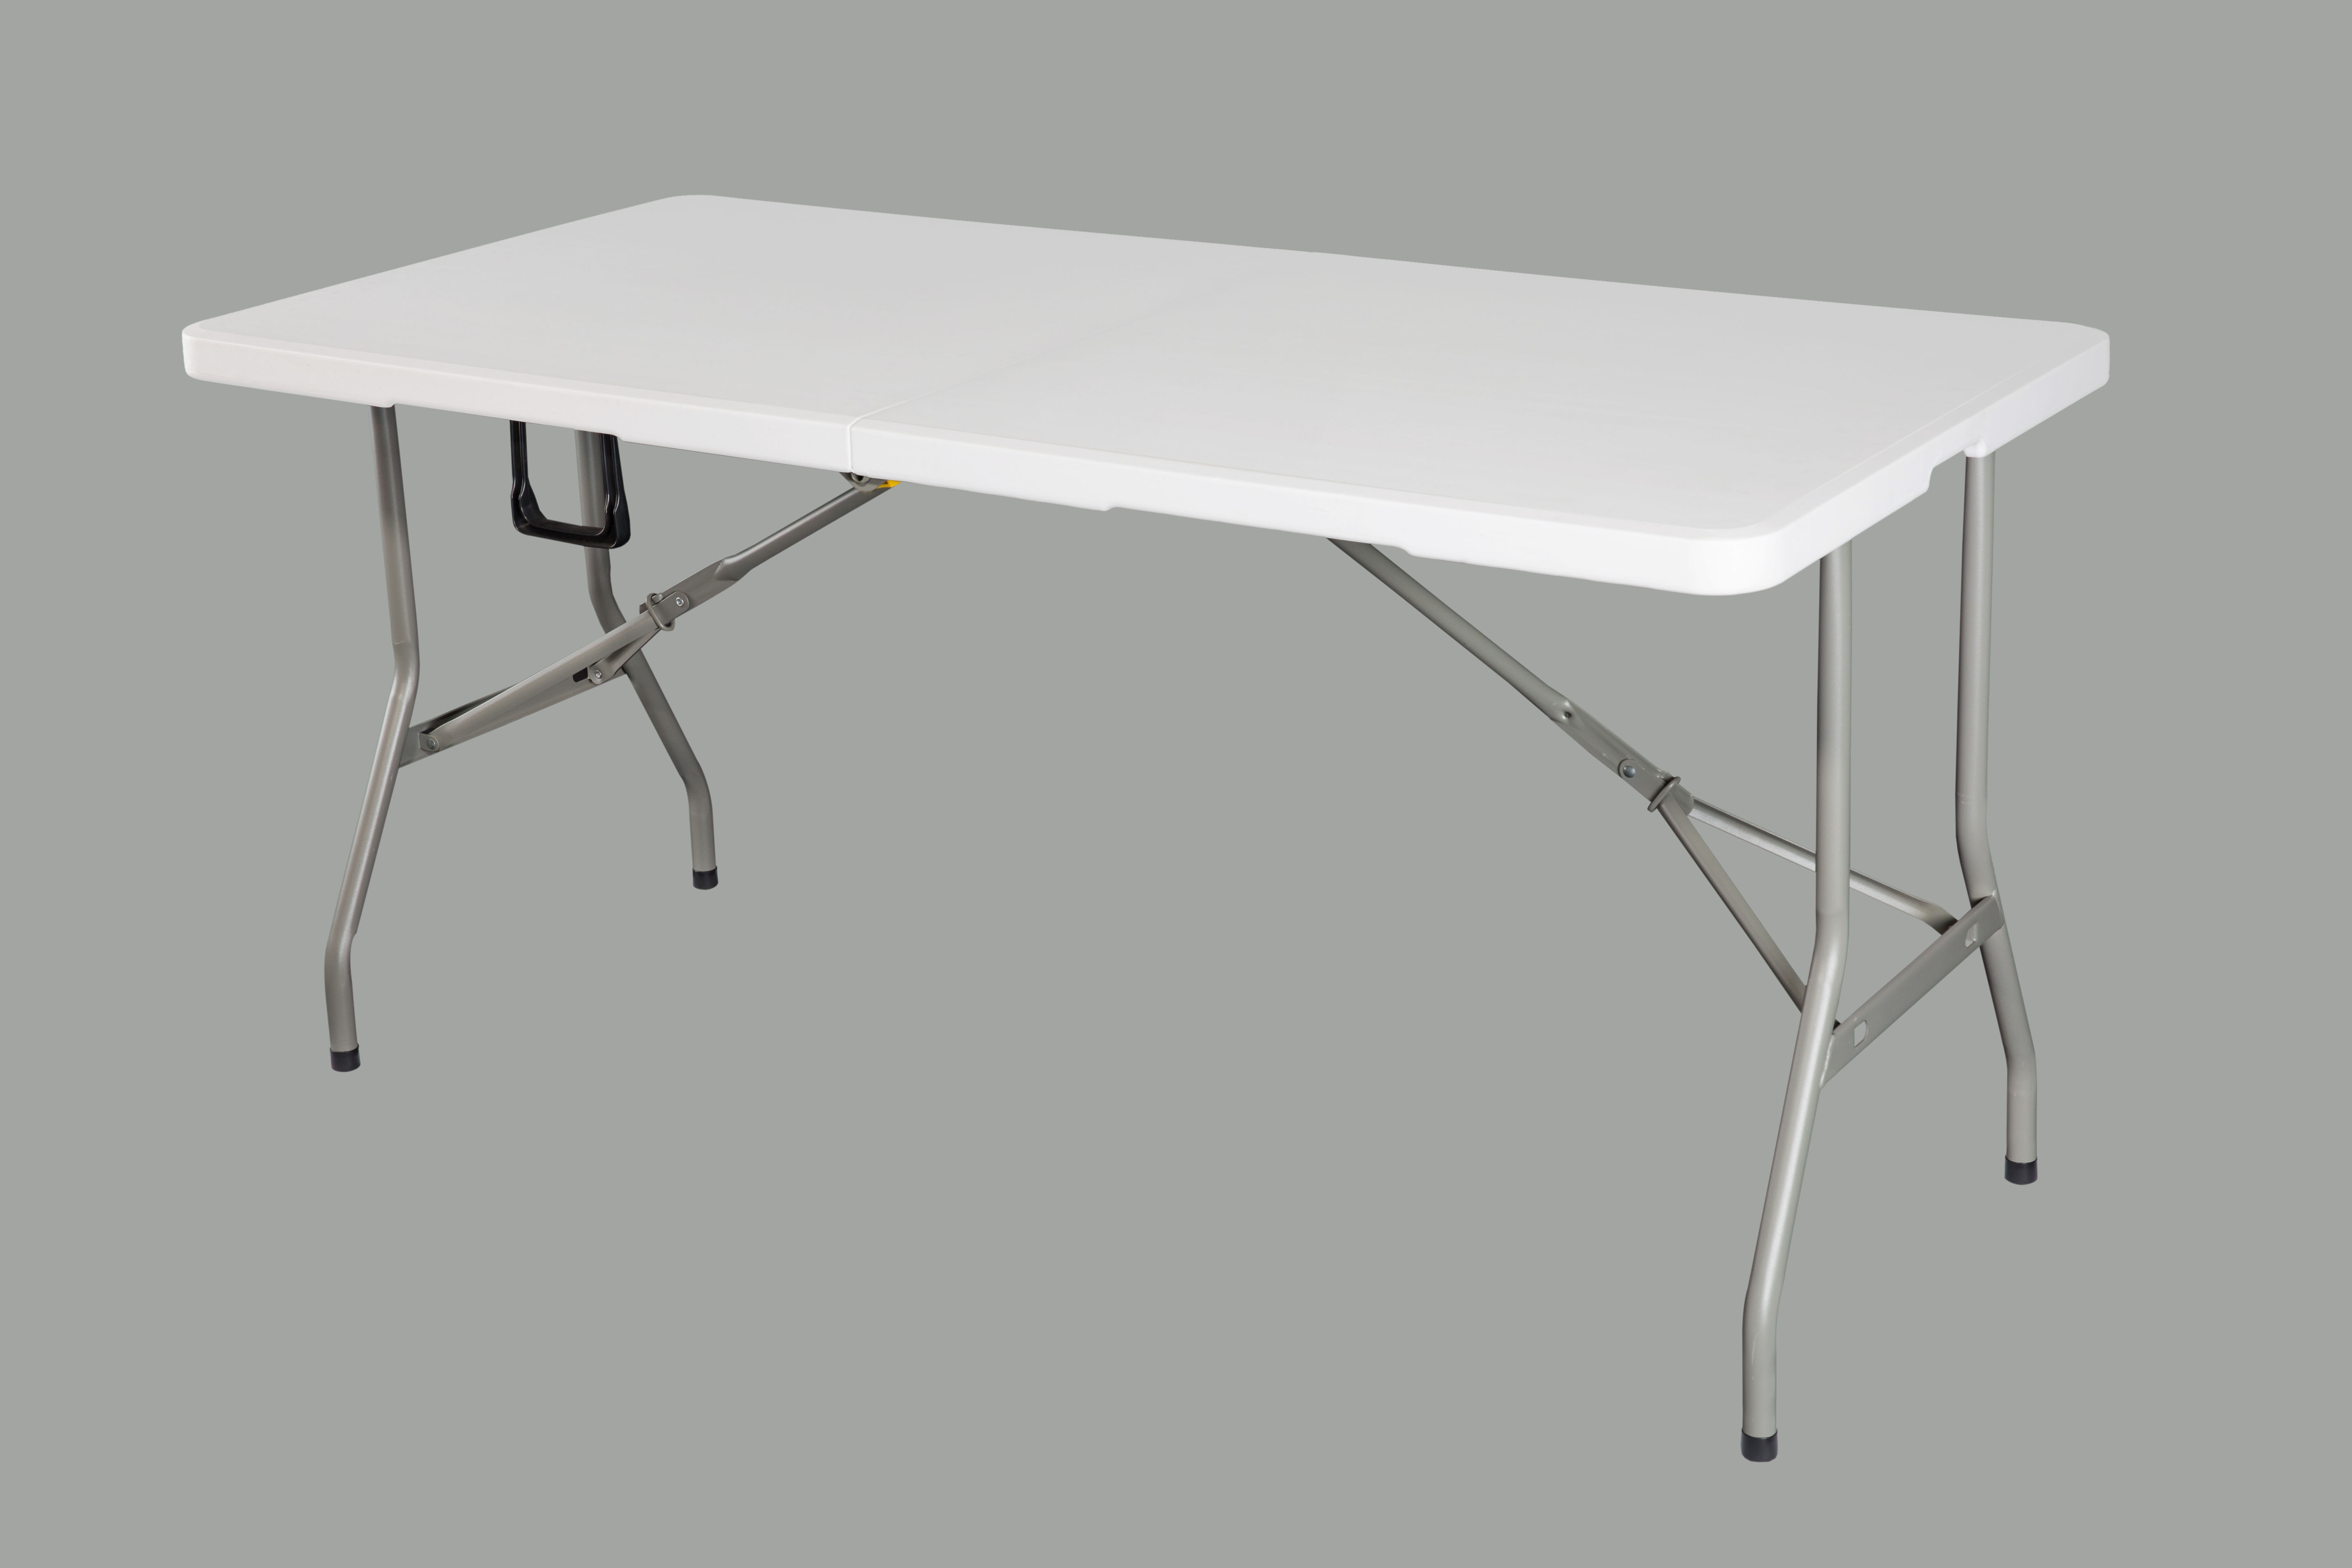 mold folding table outdoor folding table